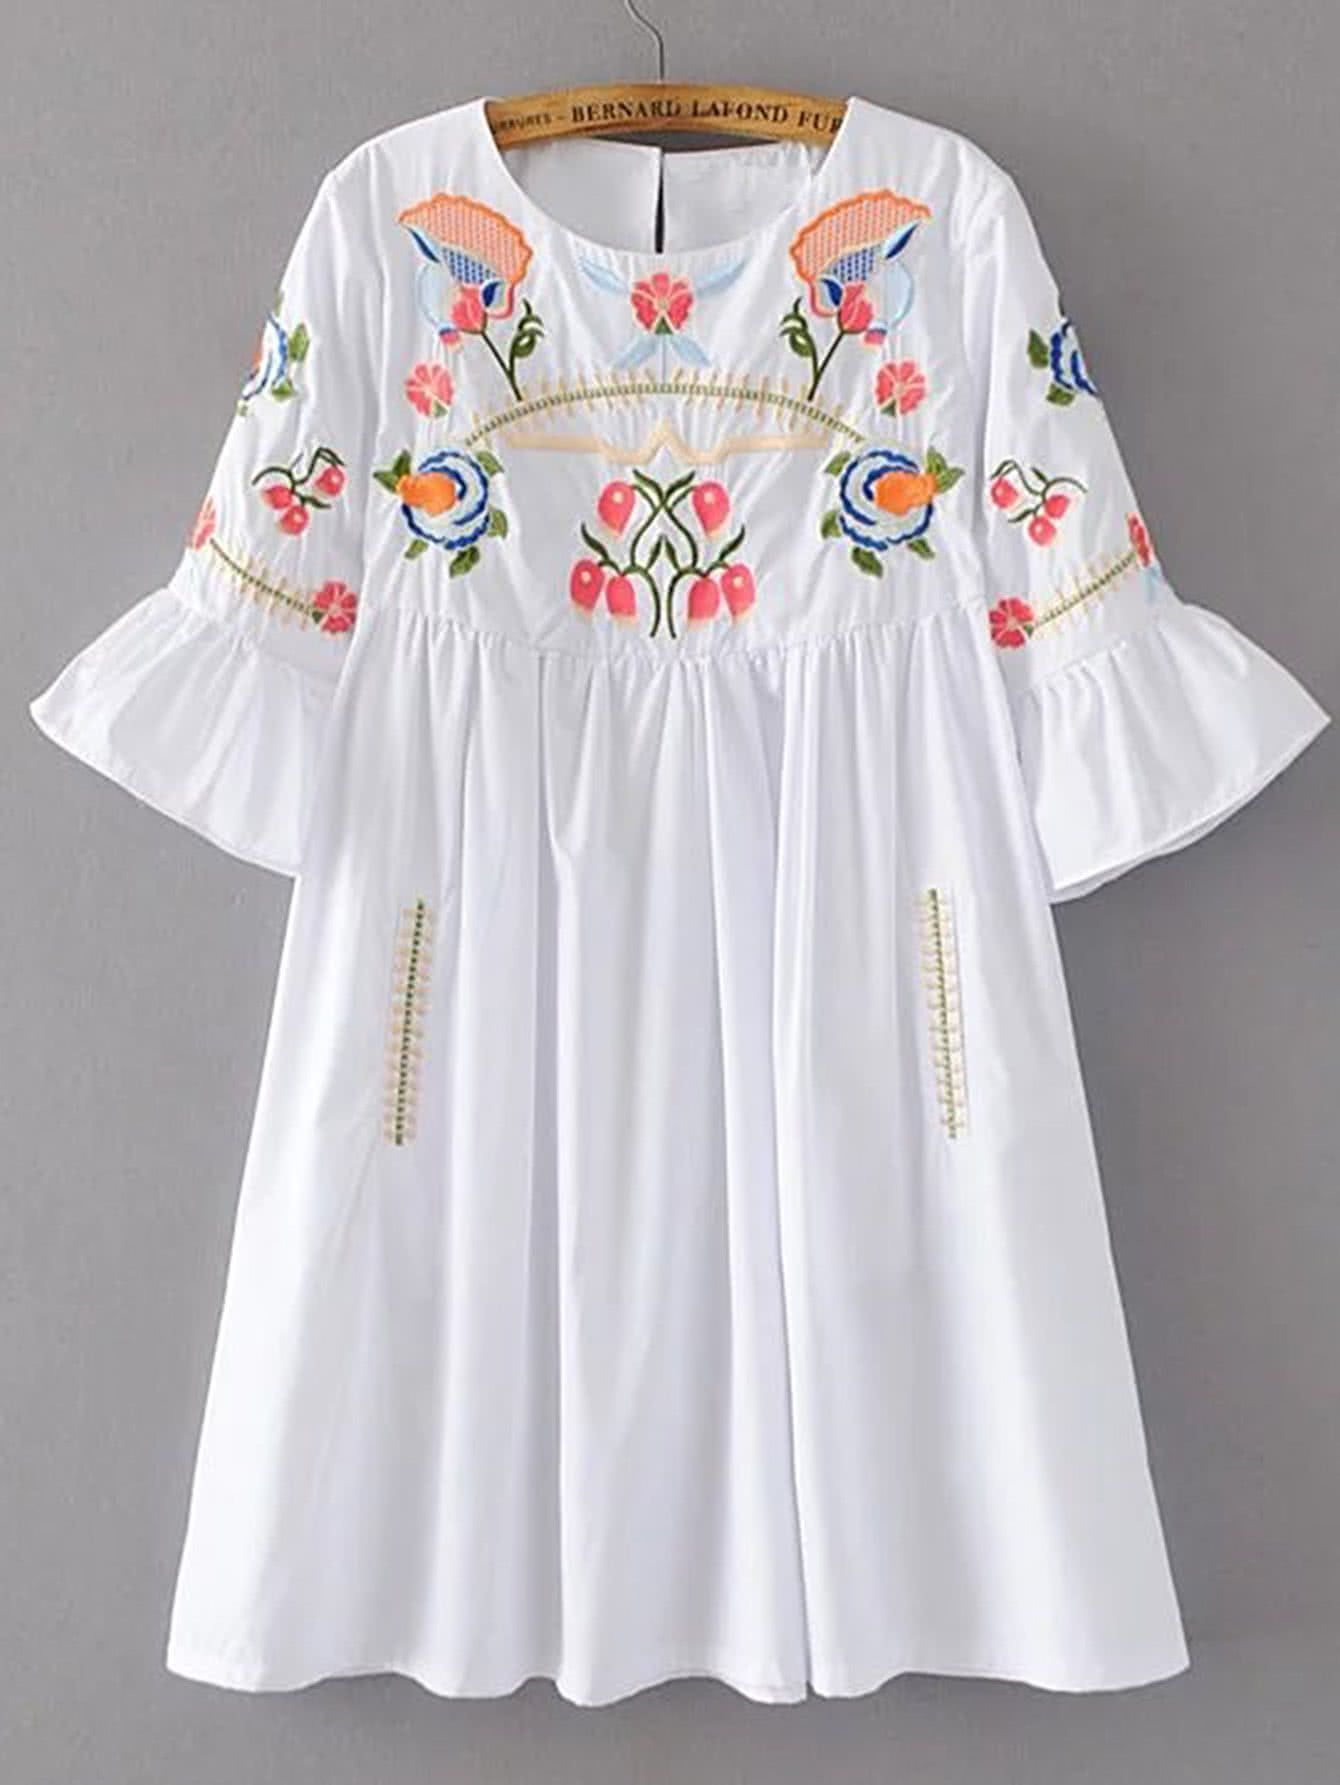 91ff27b144 Shop Bell Sleeve Flower Embroidery Dress online. SheIn offers Bell Sleeve  Flower Embroidery Dress & more to fit your fashionable needs.